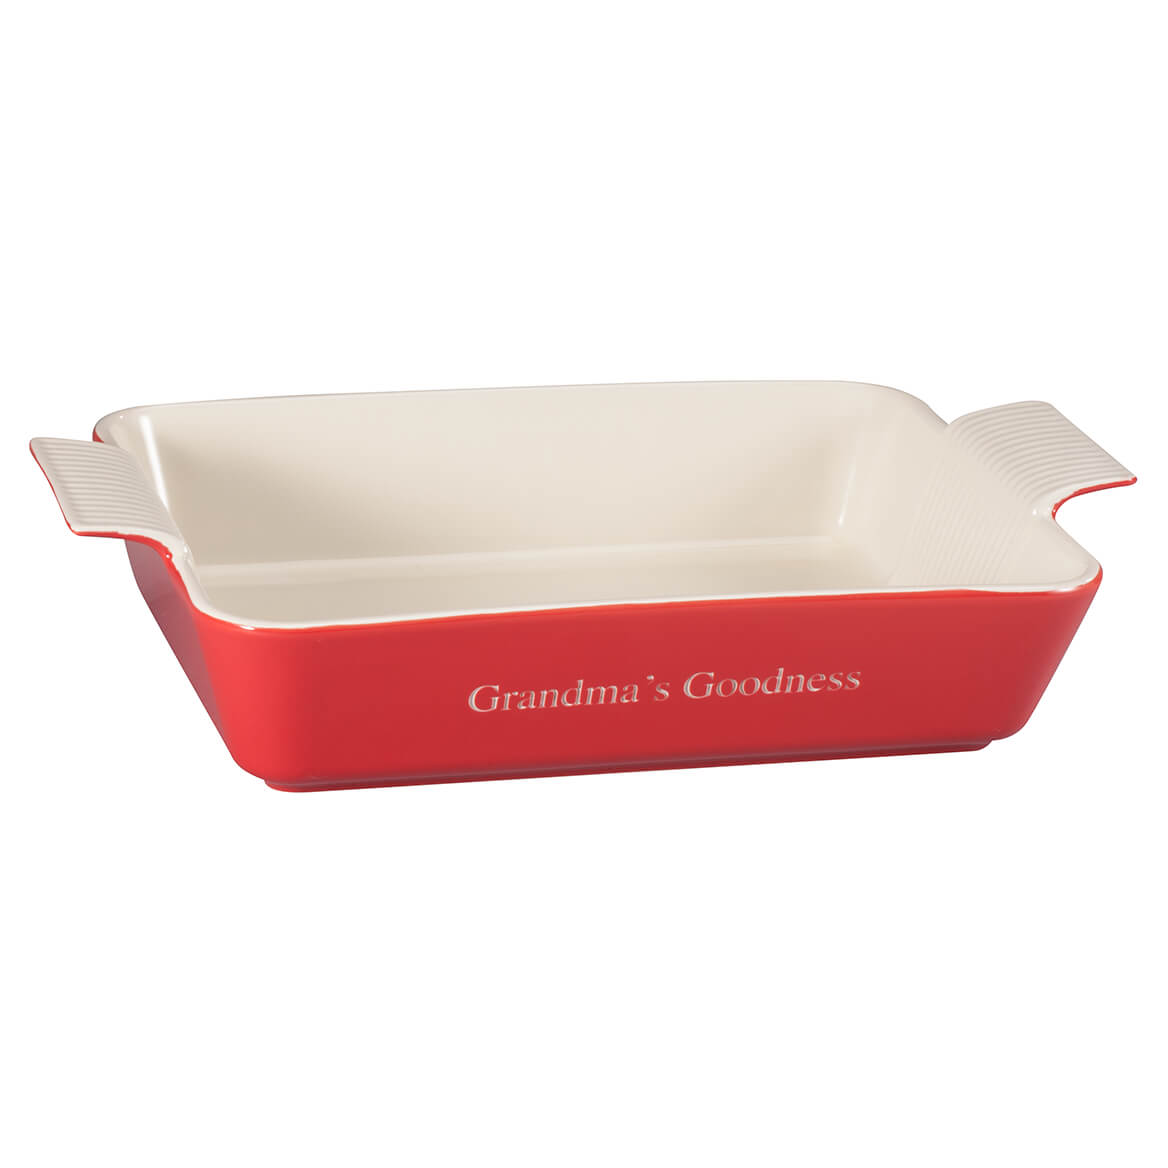 Personalized Ceramic Rectangular Baker